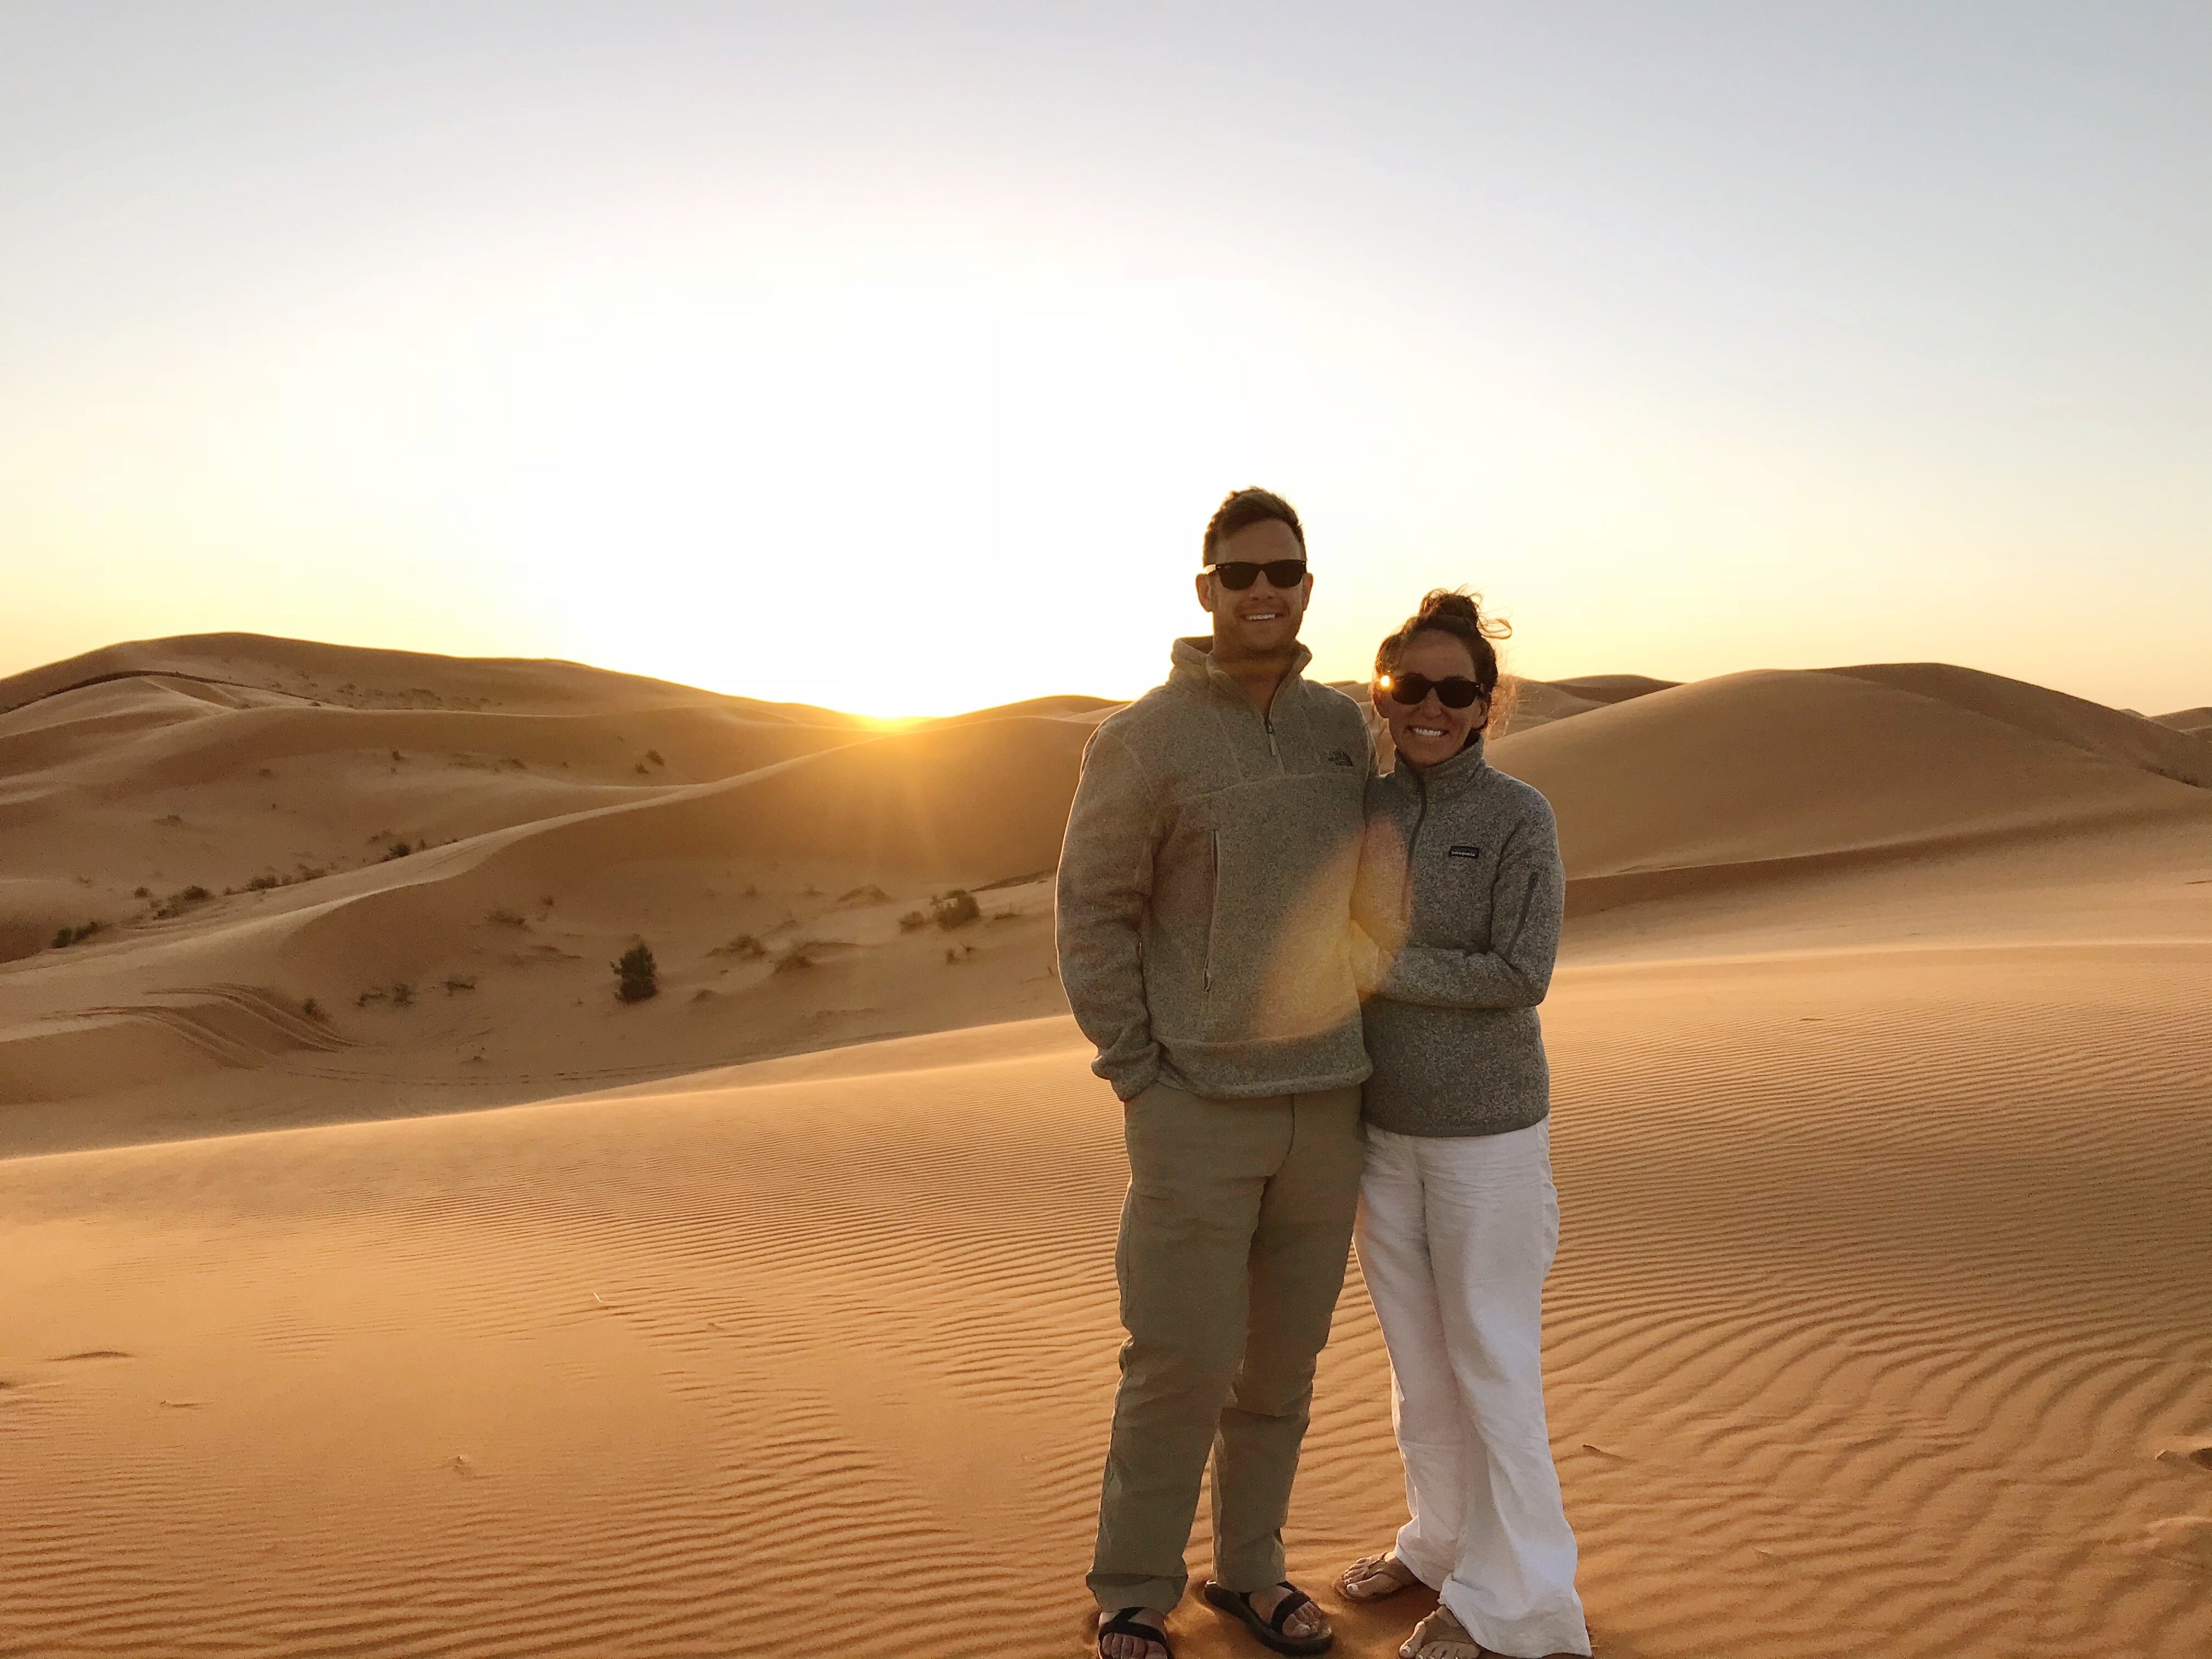 OUR LUXURY DESERT CAMP EXCURSION IN MOROCCO | Morocco Desert Camp - Desert Luxury Camp Morocco - Luxury Desert Camp Morocco - Morocco Sahara Desert Camp - Desert Camp Merzouga Morocco - Erg Chebbi Camp Morocco - Camping Morocco - Best Luxury Desert Camp Morocco - Sahara Desert Camp - Dar Jnan Tiouira - Erg Chebbi Sand Dunes - Morocco Travel Blog - #morocco #saharadesert #travelblog